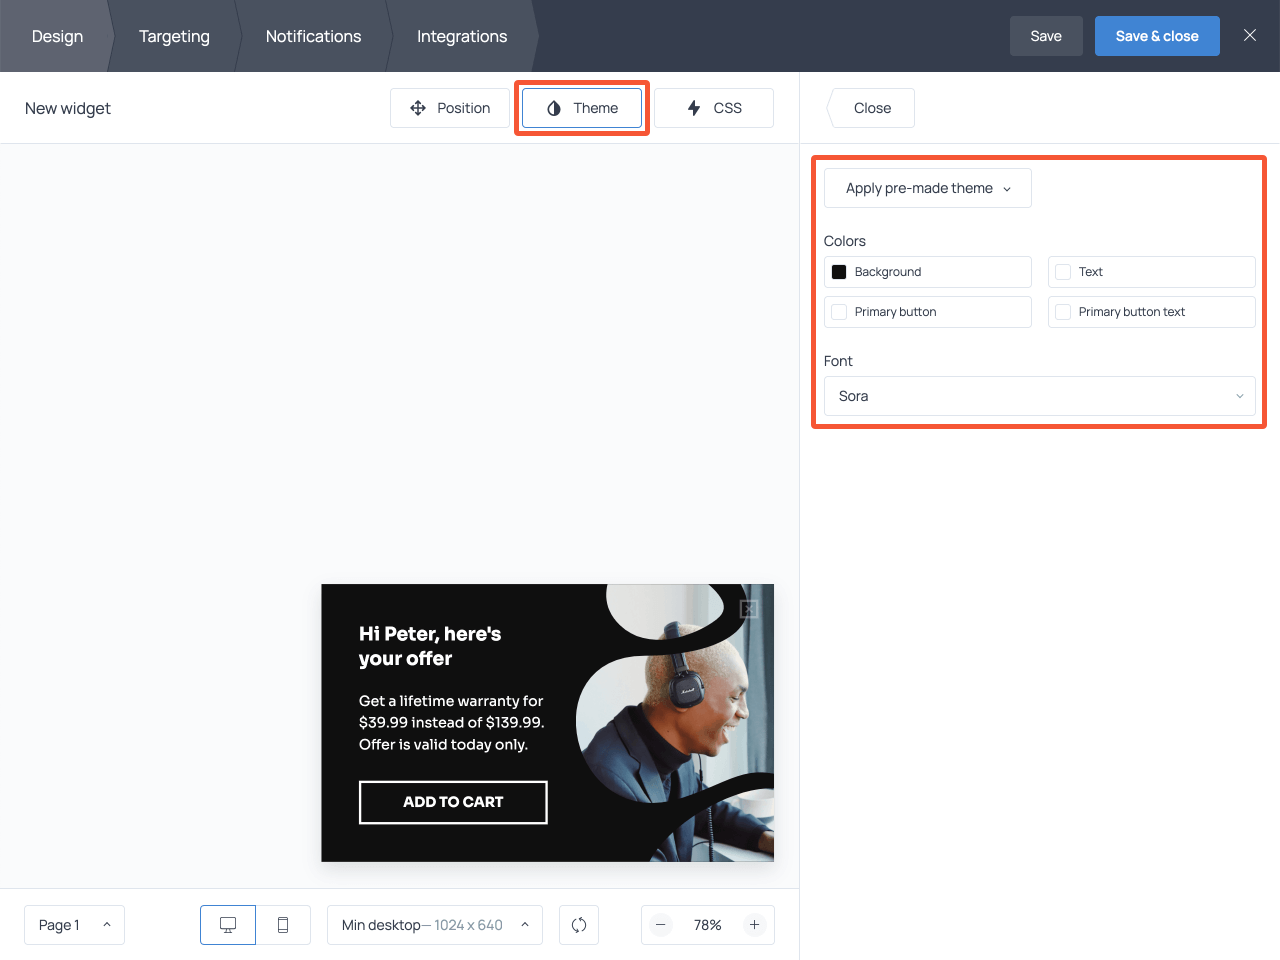 How to use the Theme menu when editing a pre-designed popup in Getsitecontrol